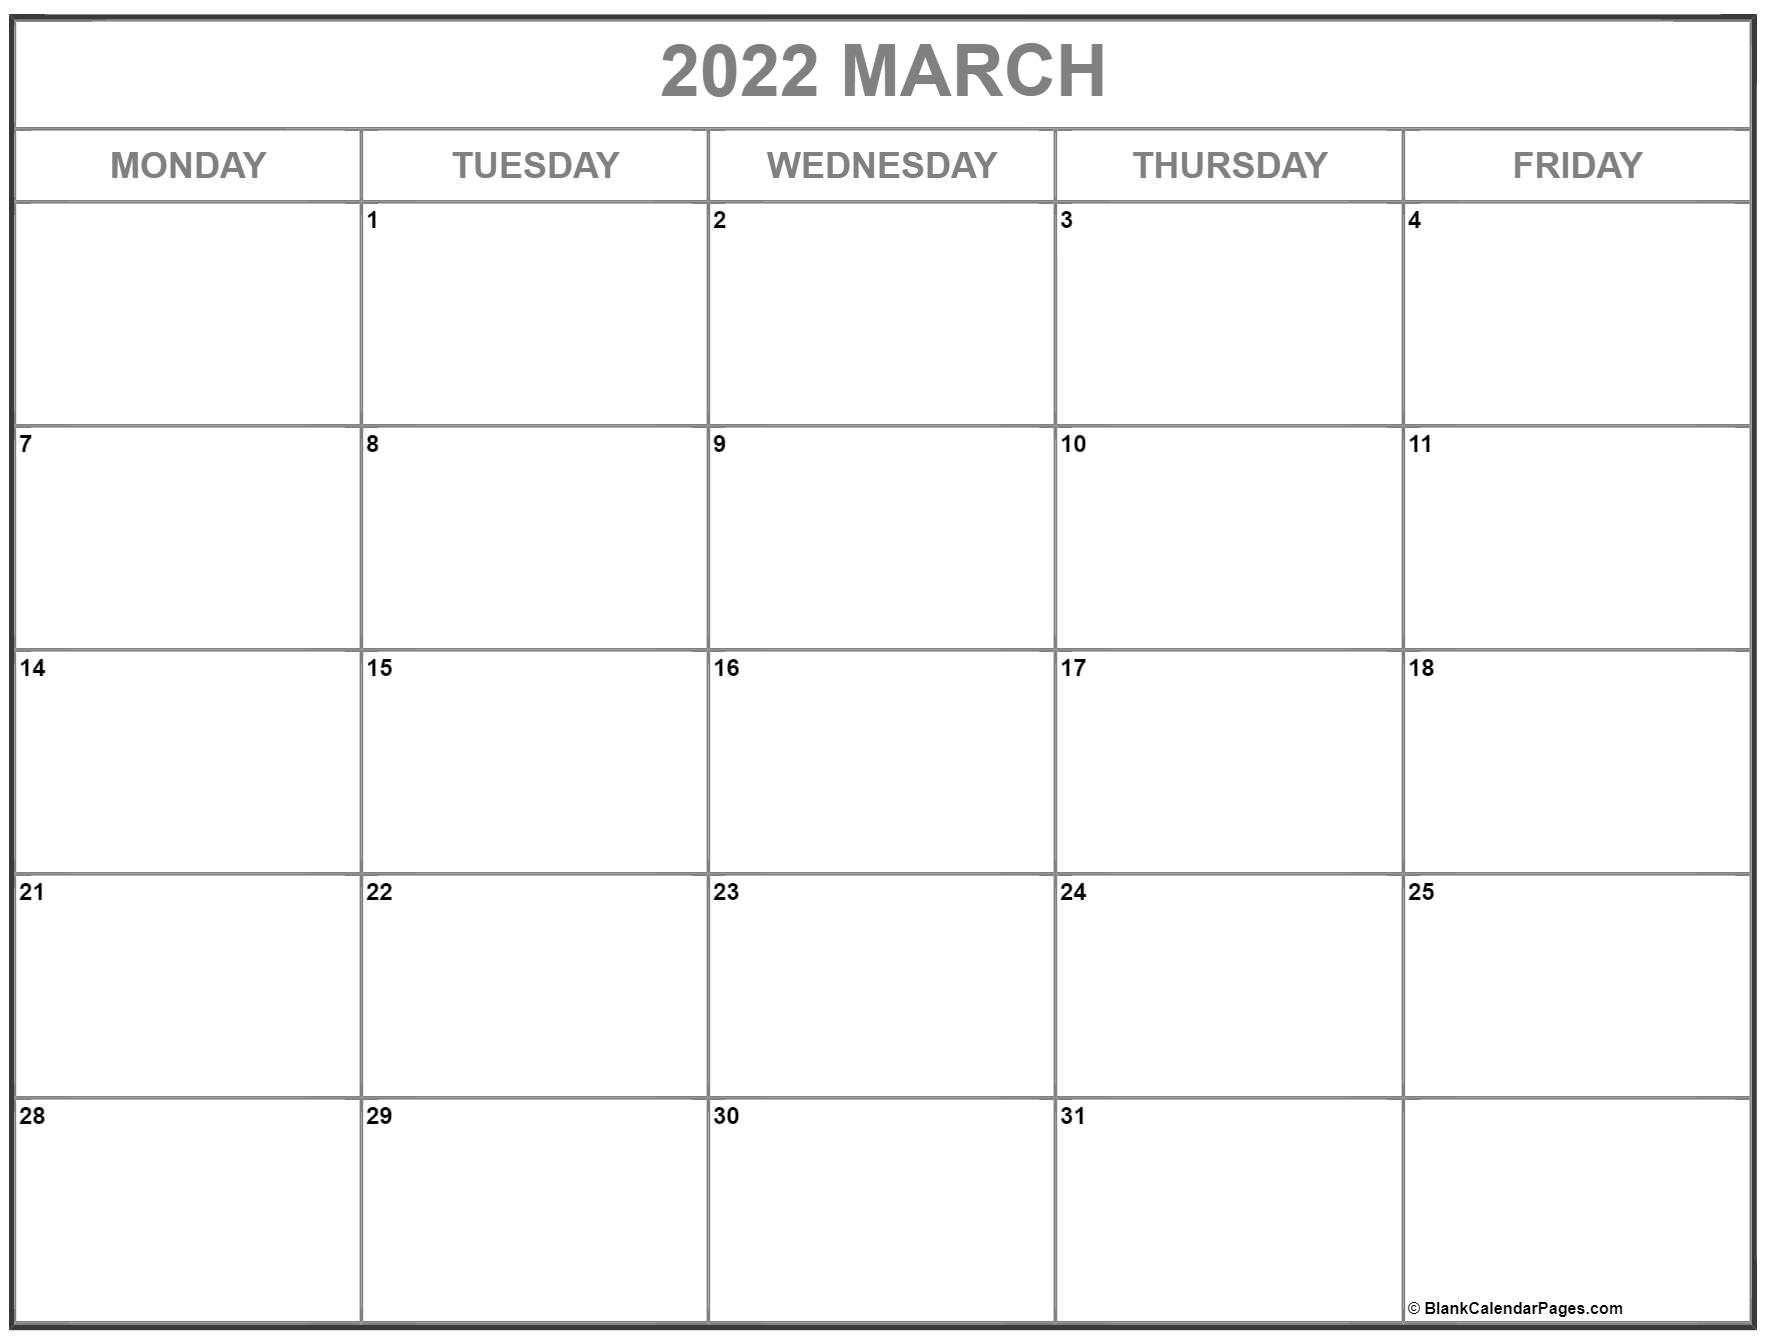 March 2022 Monday through Friday calendar.